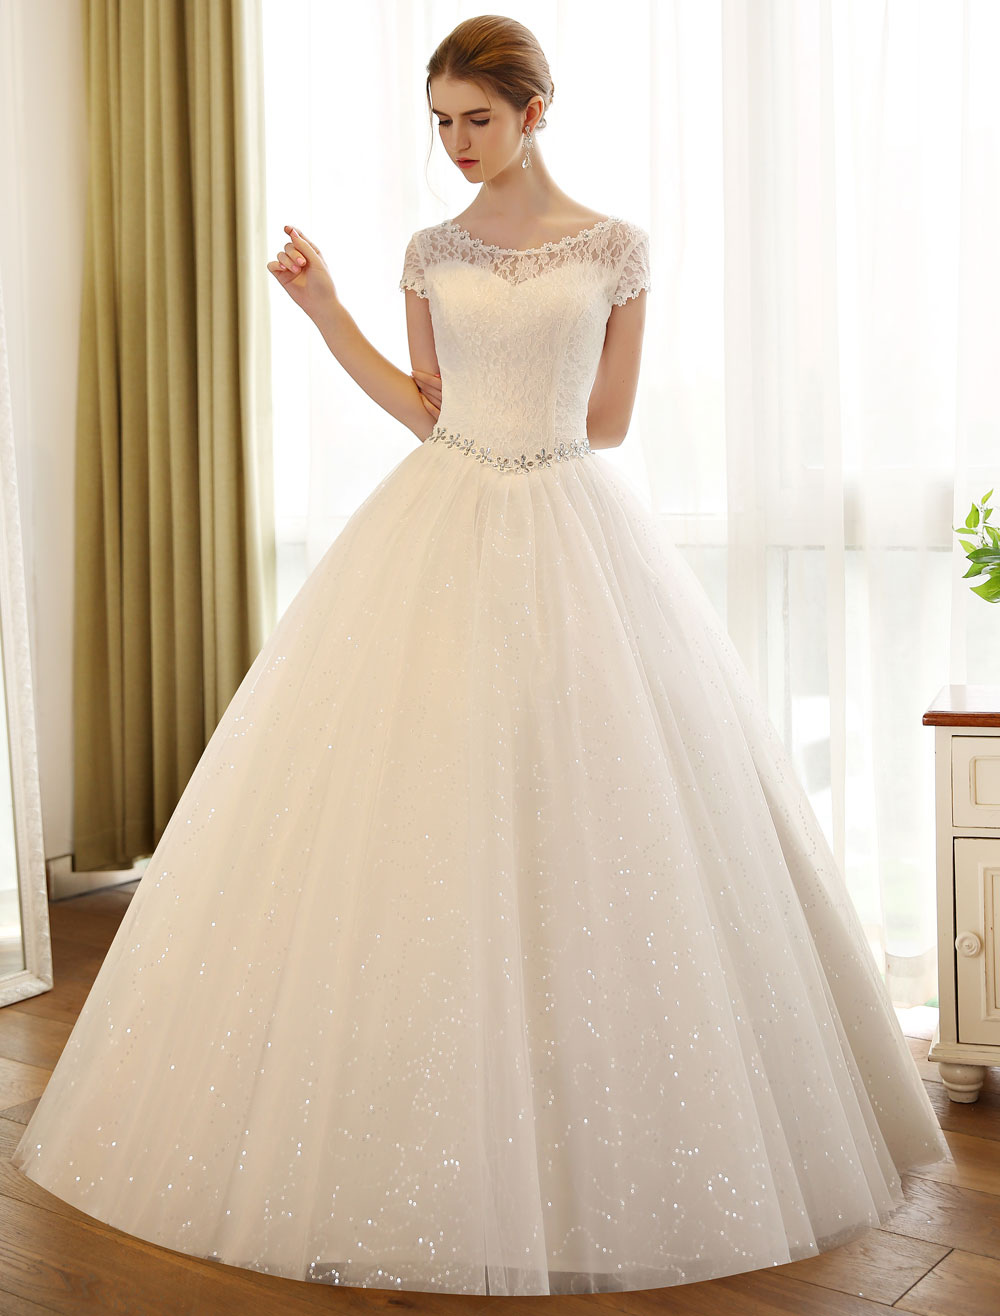 Princess Ball Gown Wedding Dresses Lace Sequin Bridal Dress Ivory ...